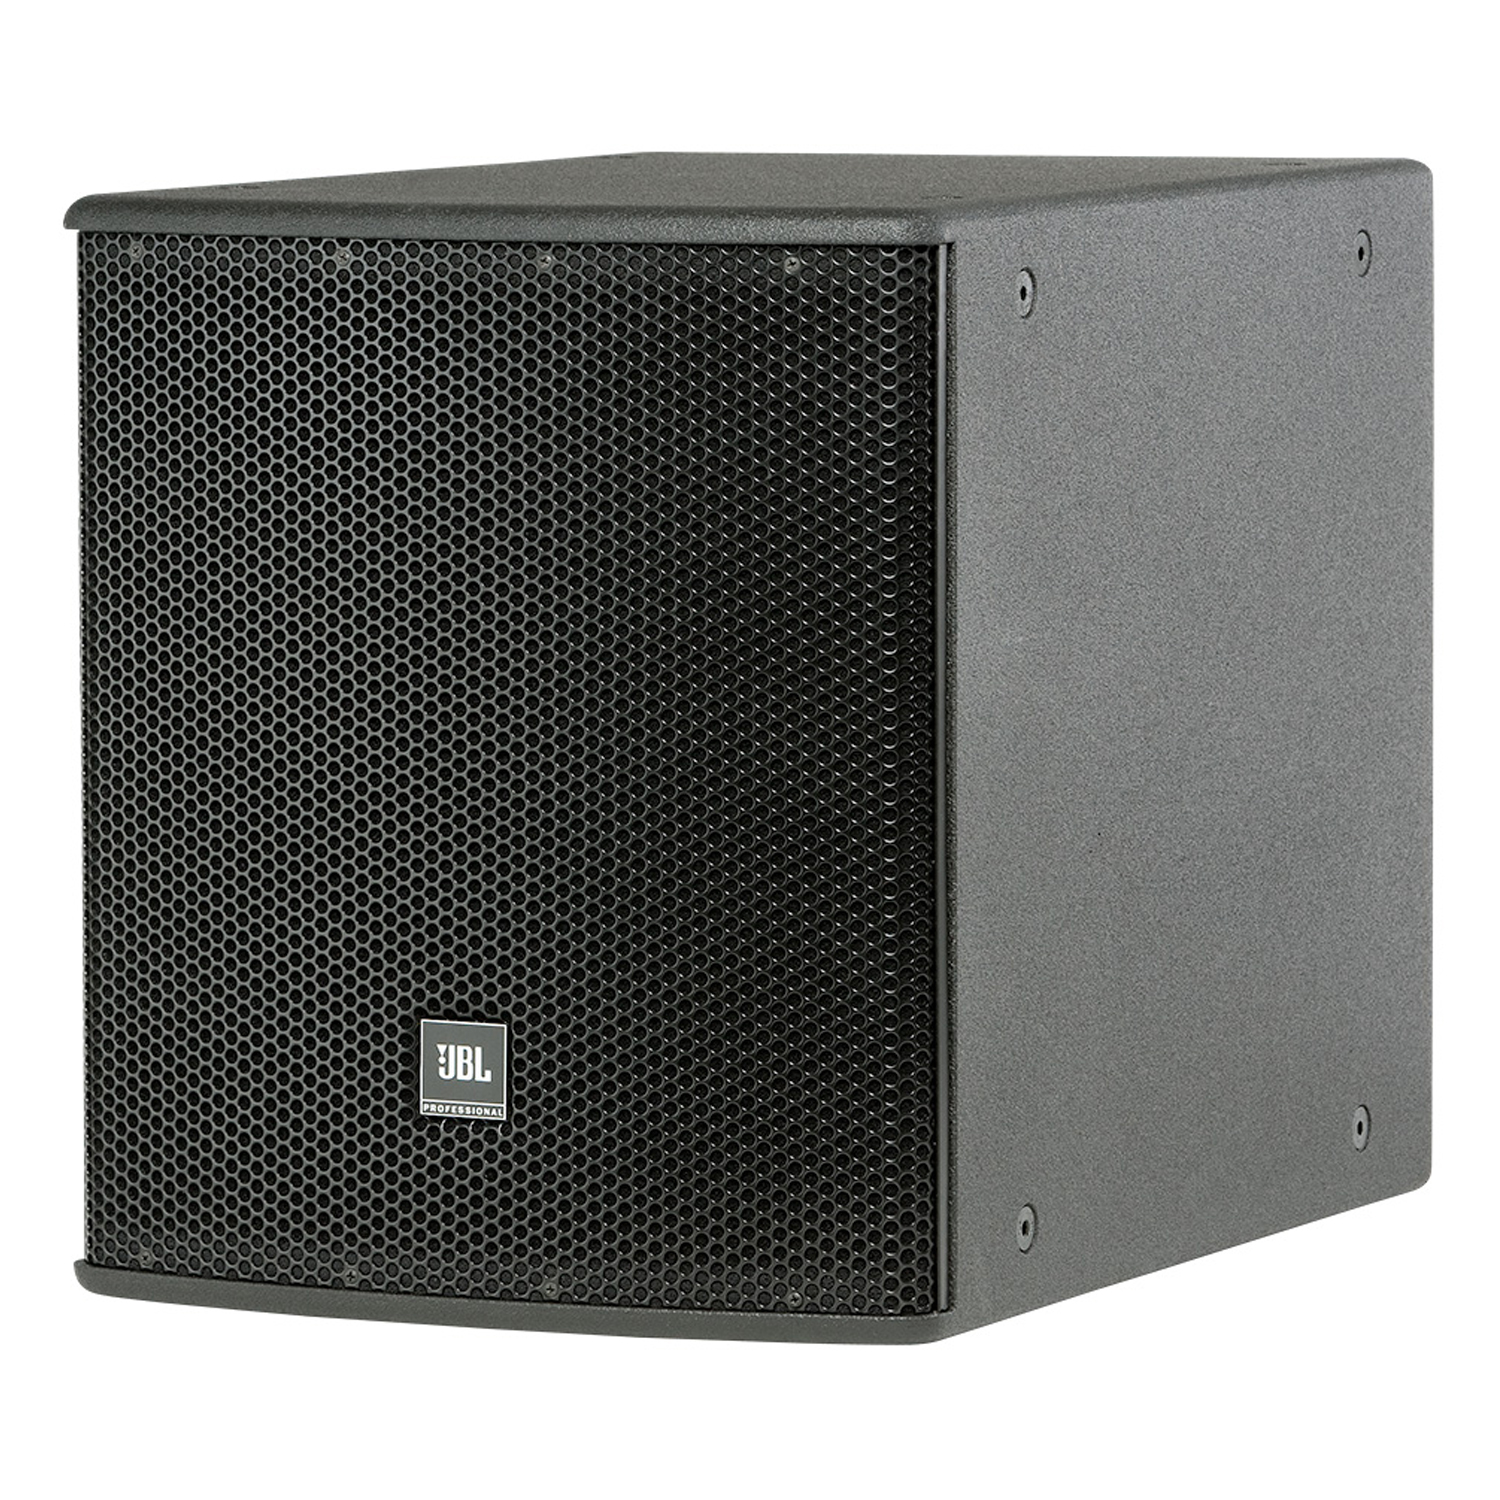 "High Power Single 15"" Subwoofer"